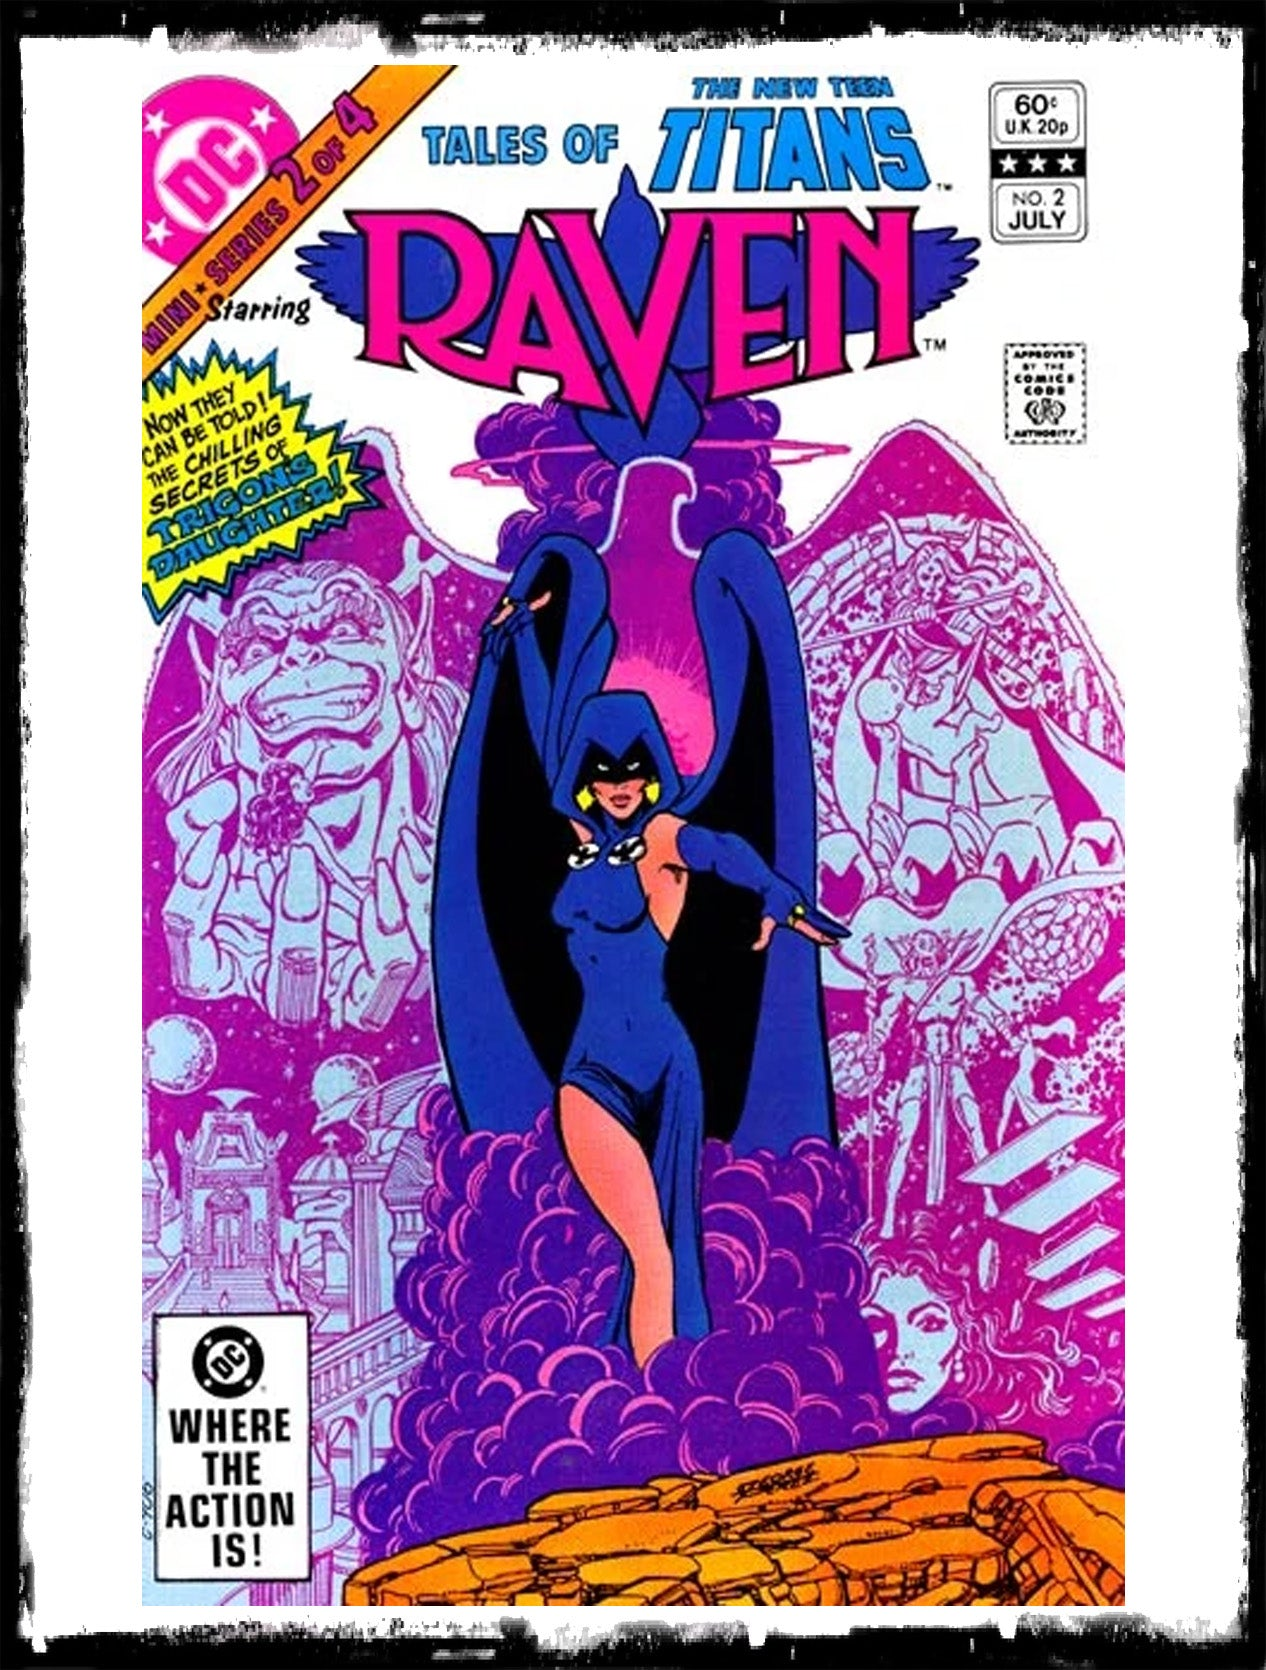 TALES OF THE NEW TEEN TITANS - #2 ORIGIN OF RAVEN (1982 - VF+/NM)